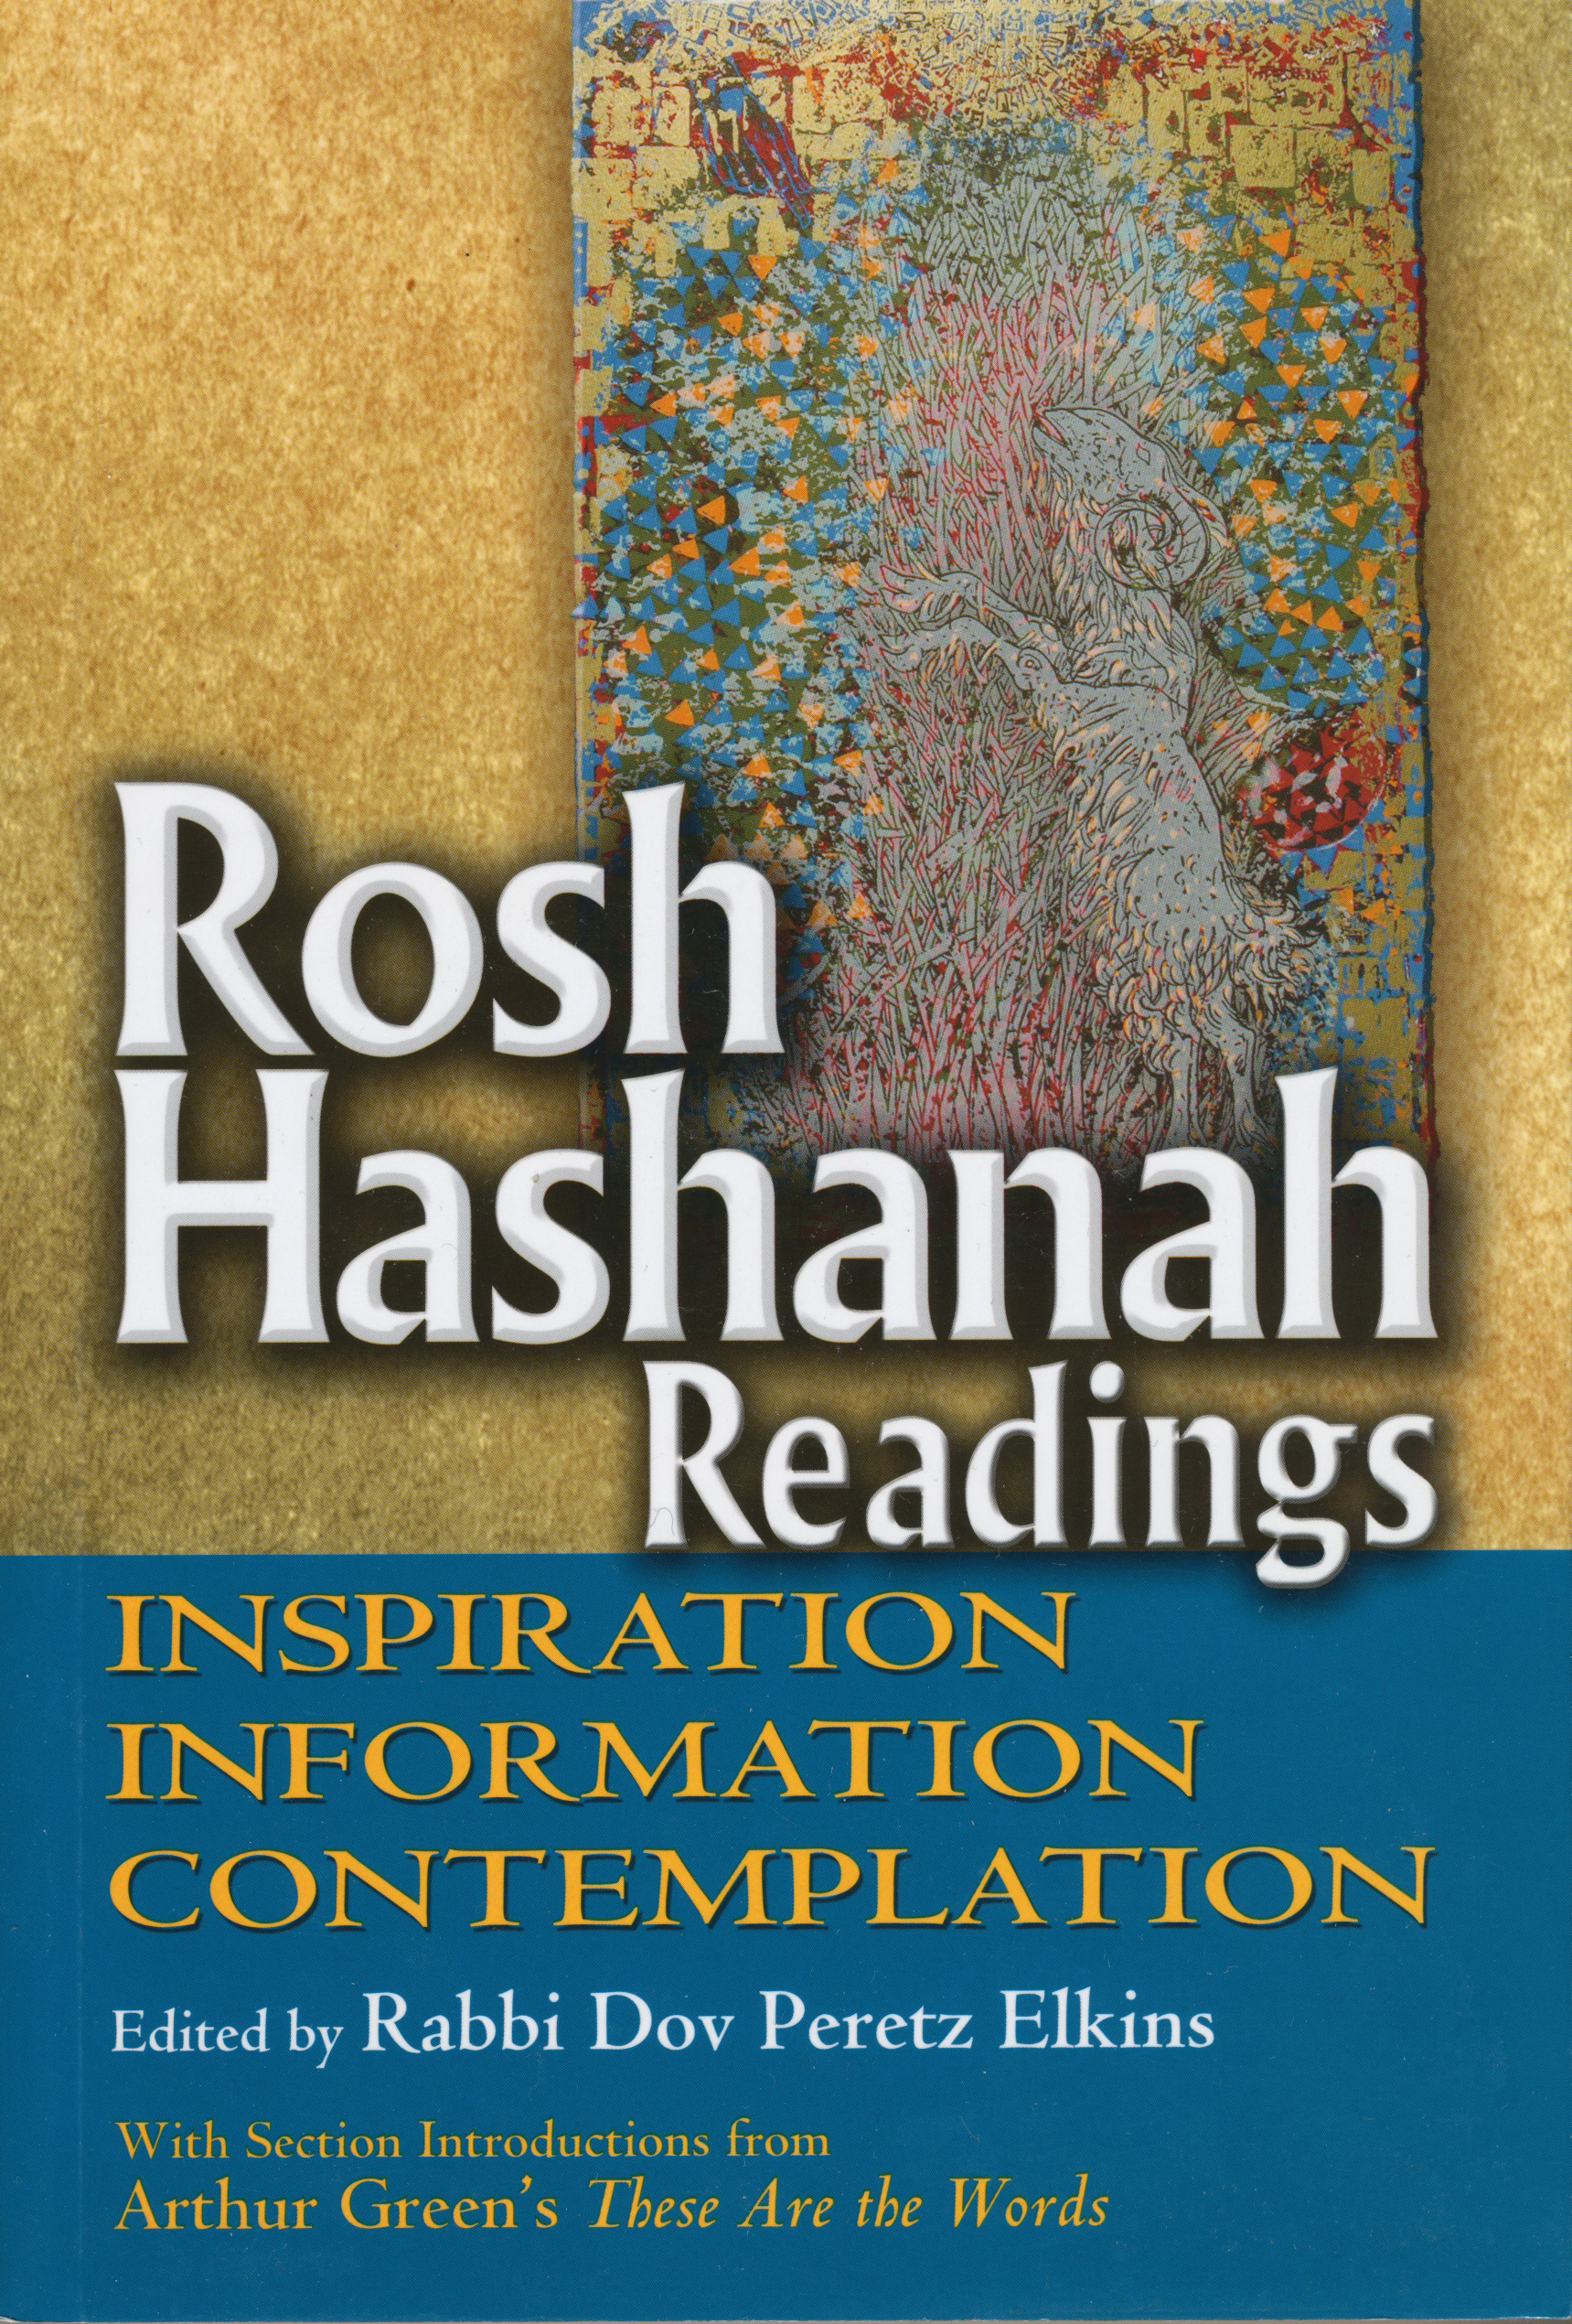 Rosh Hashana Readings